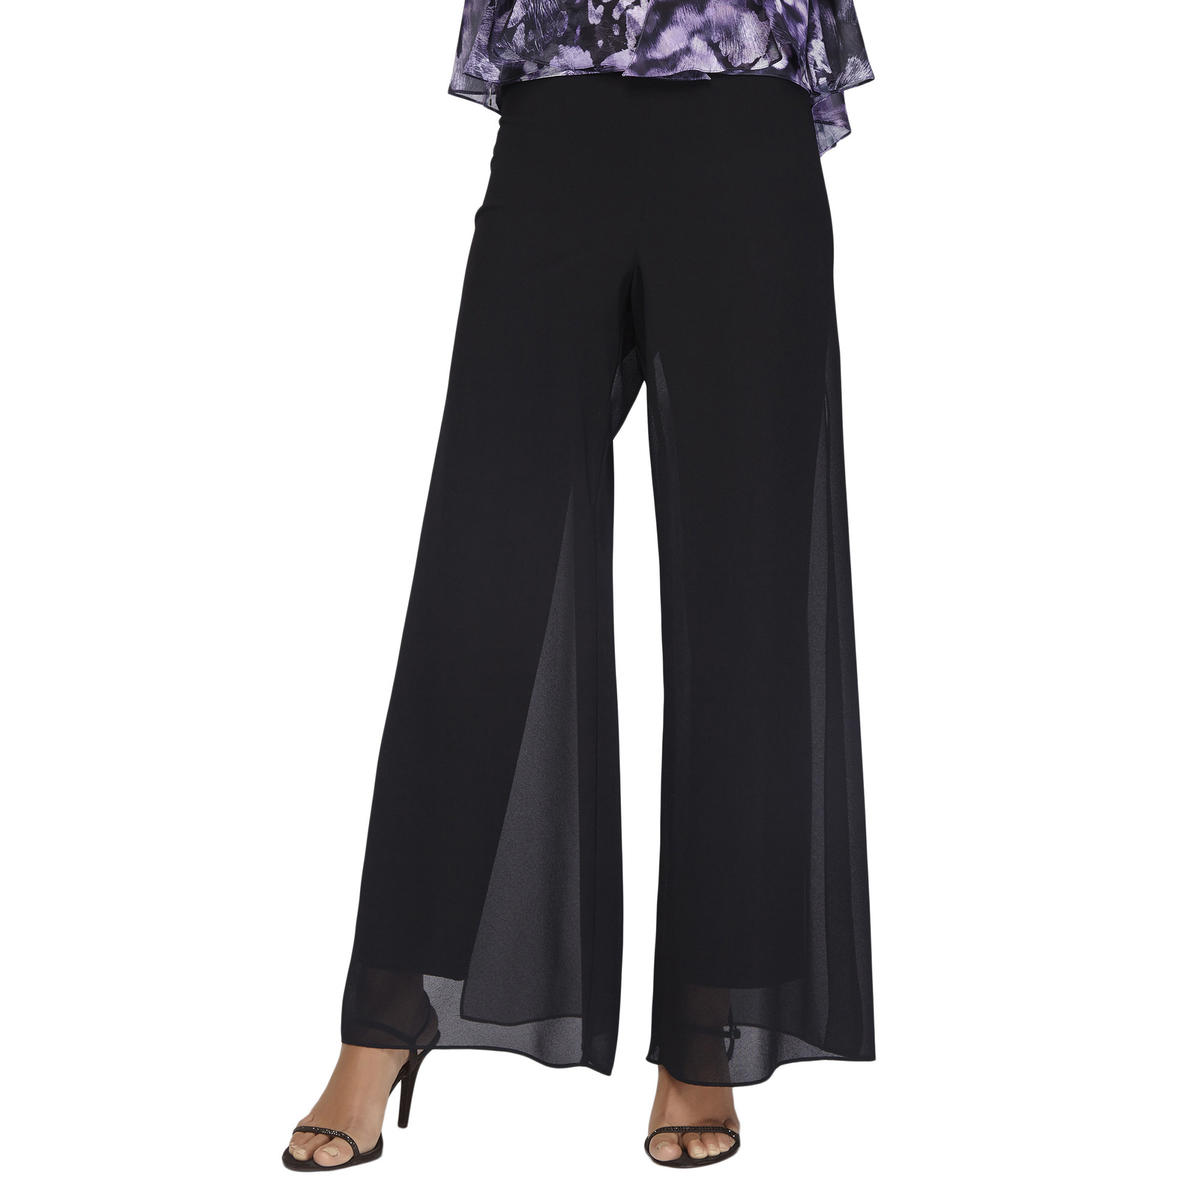 ALEX APPAREL GROUP INC - Chiffon Flyaway Pant